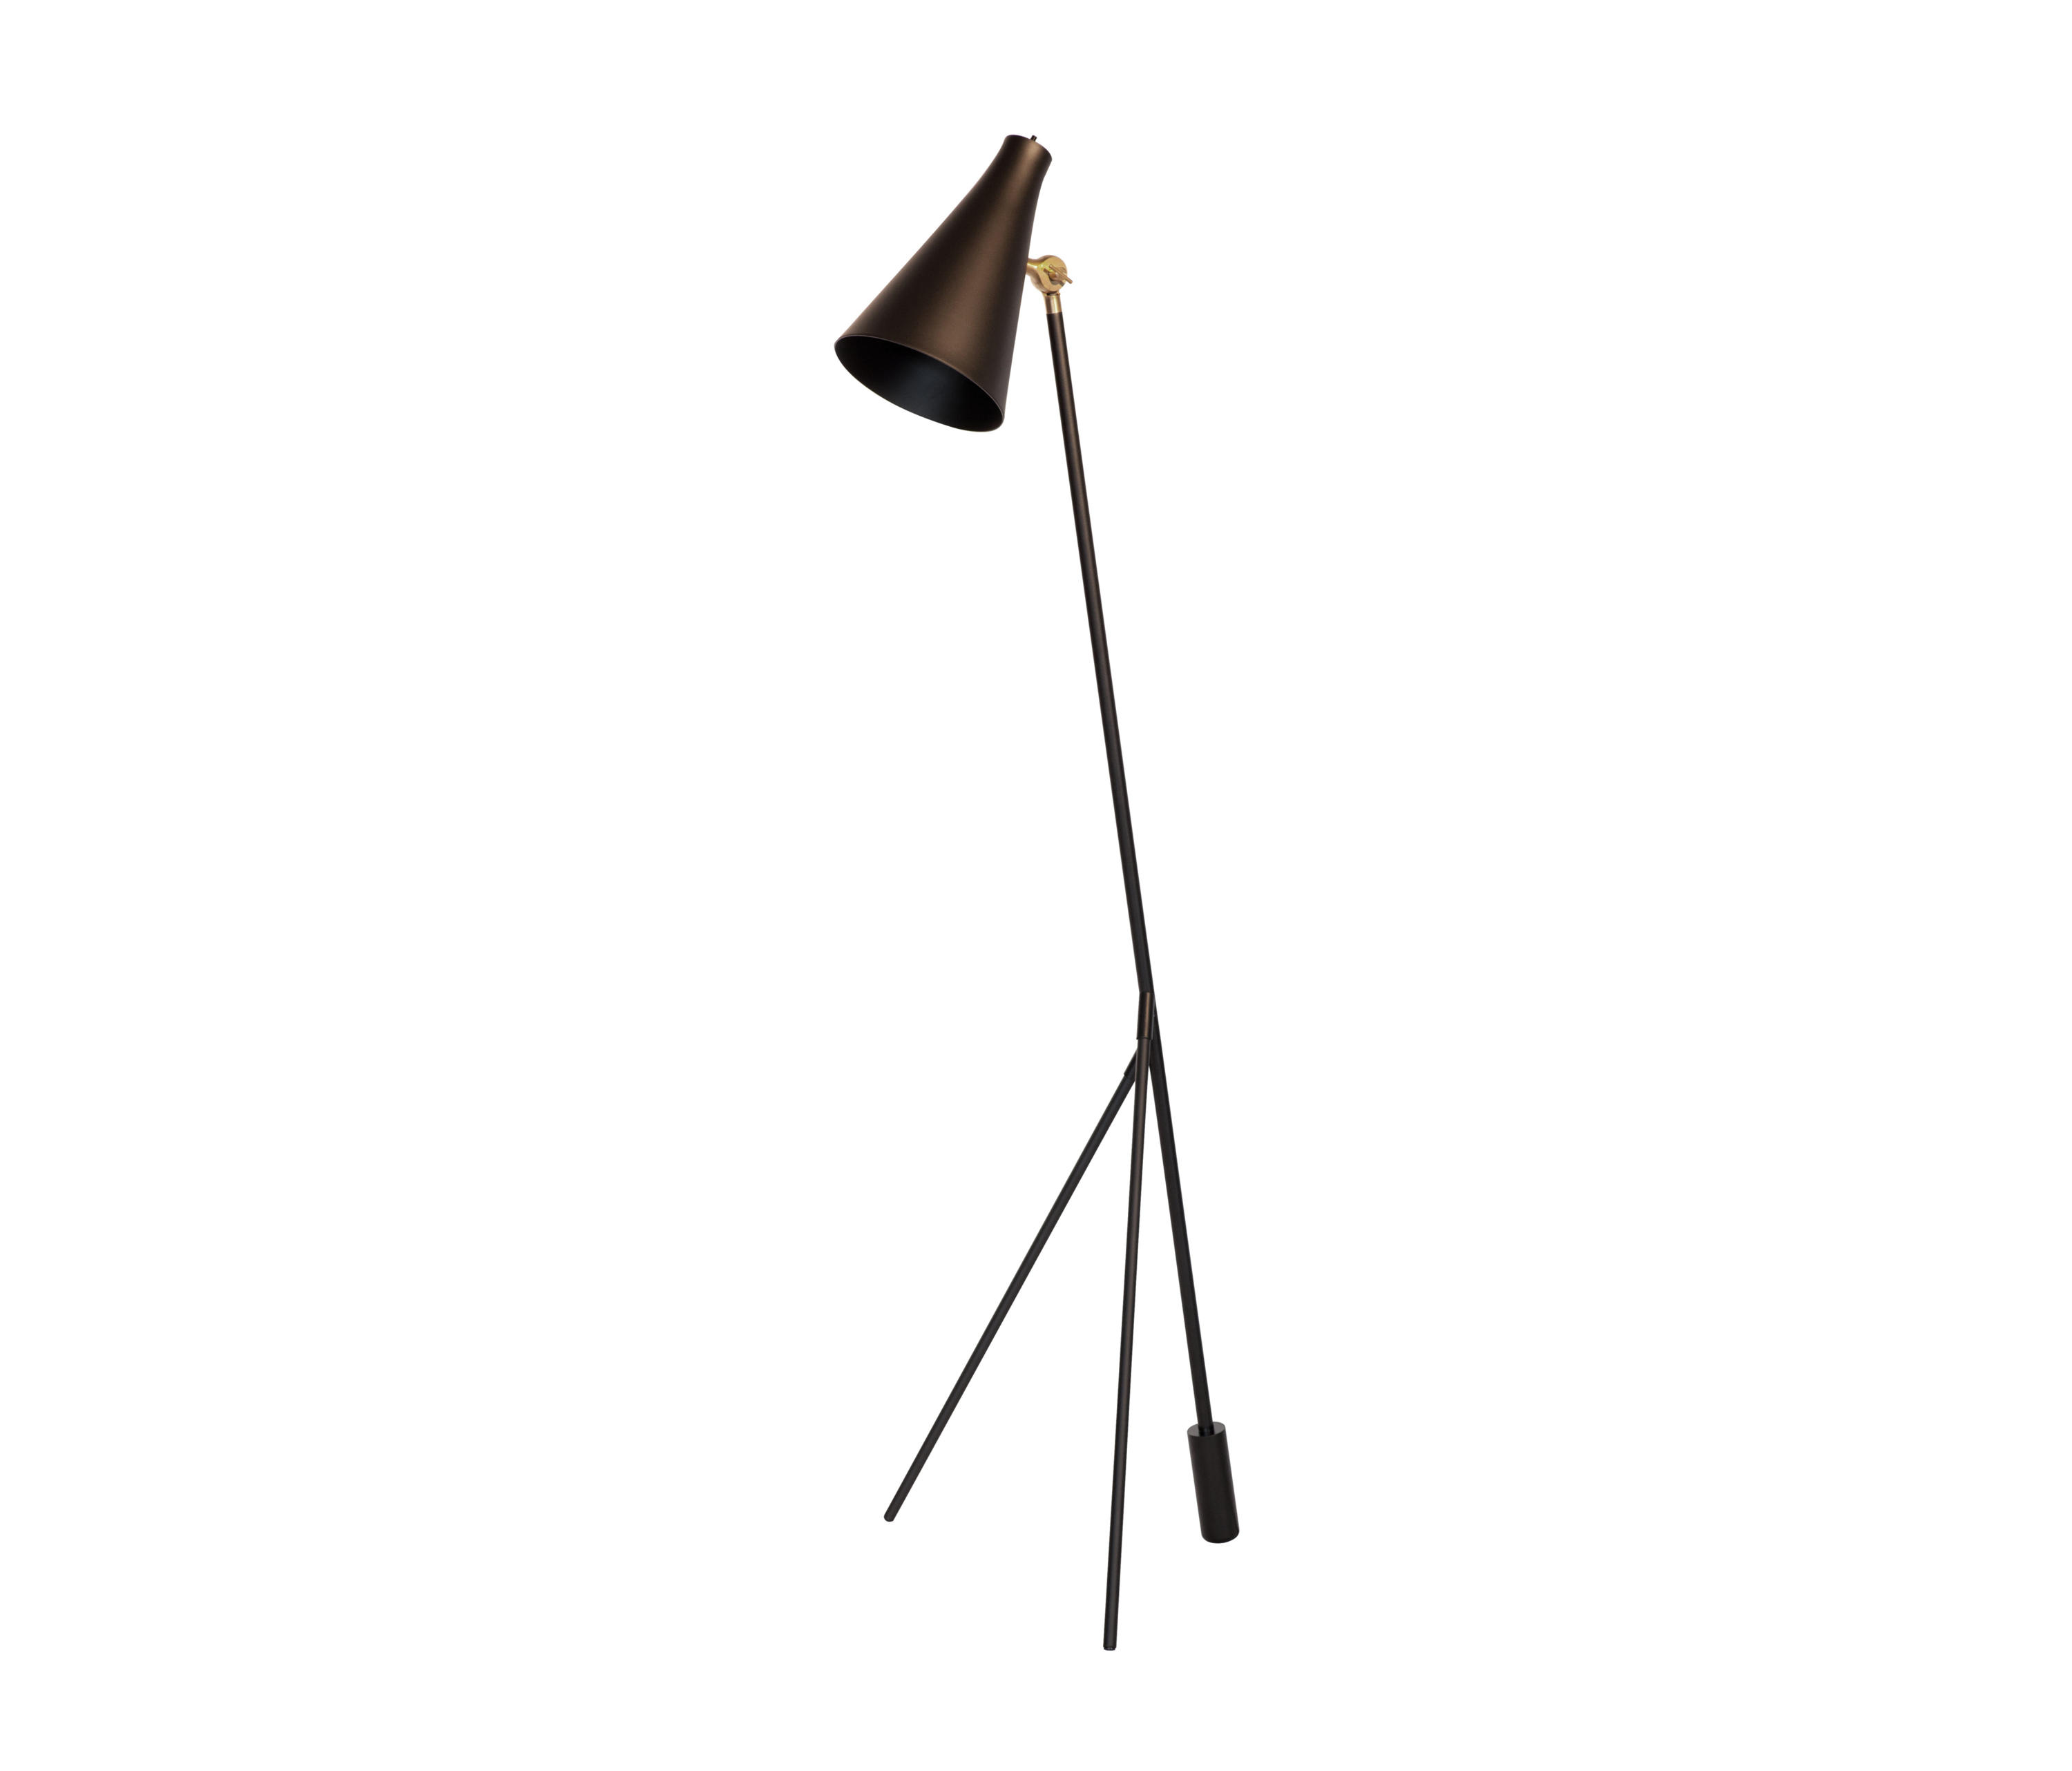 Hunter floor l& by RUBEN LIGHTING | Free-standing lights ...  sc 1 st  Architonic & HUNTER FLOOR LAMP - Free-standing lights from RUBEN LIGHTING ...